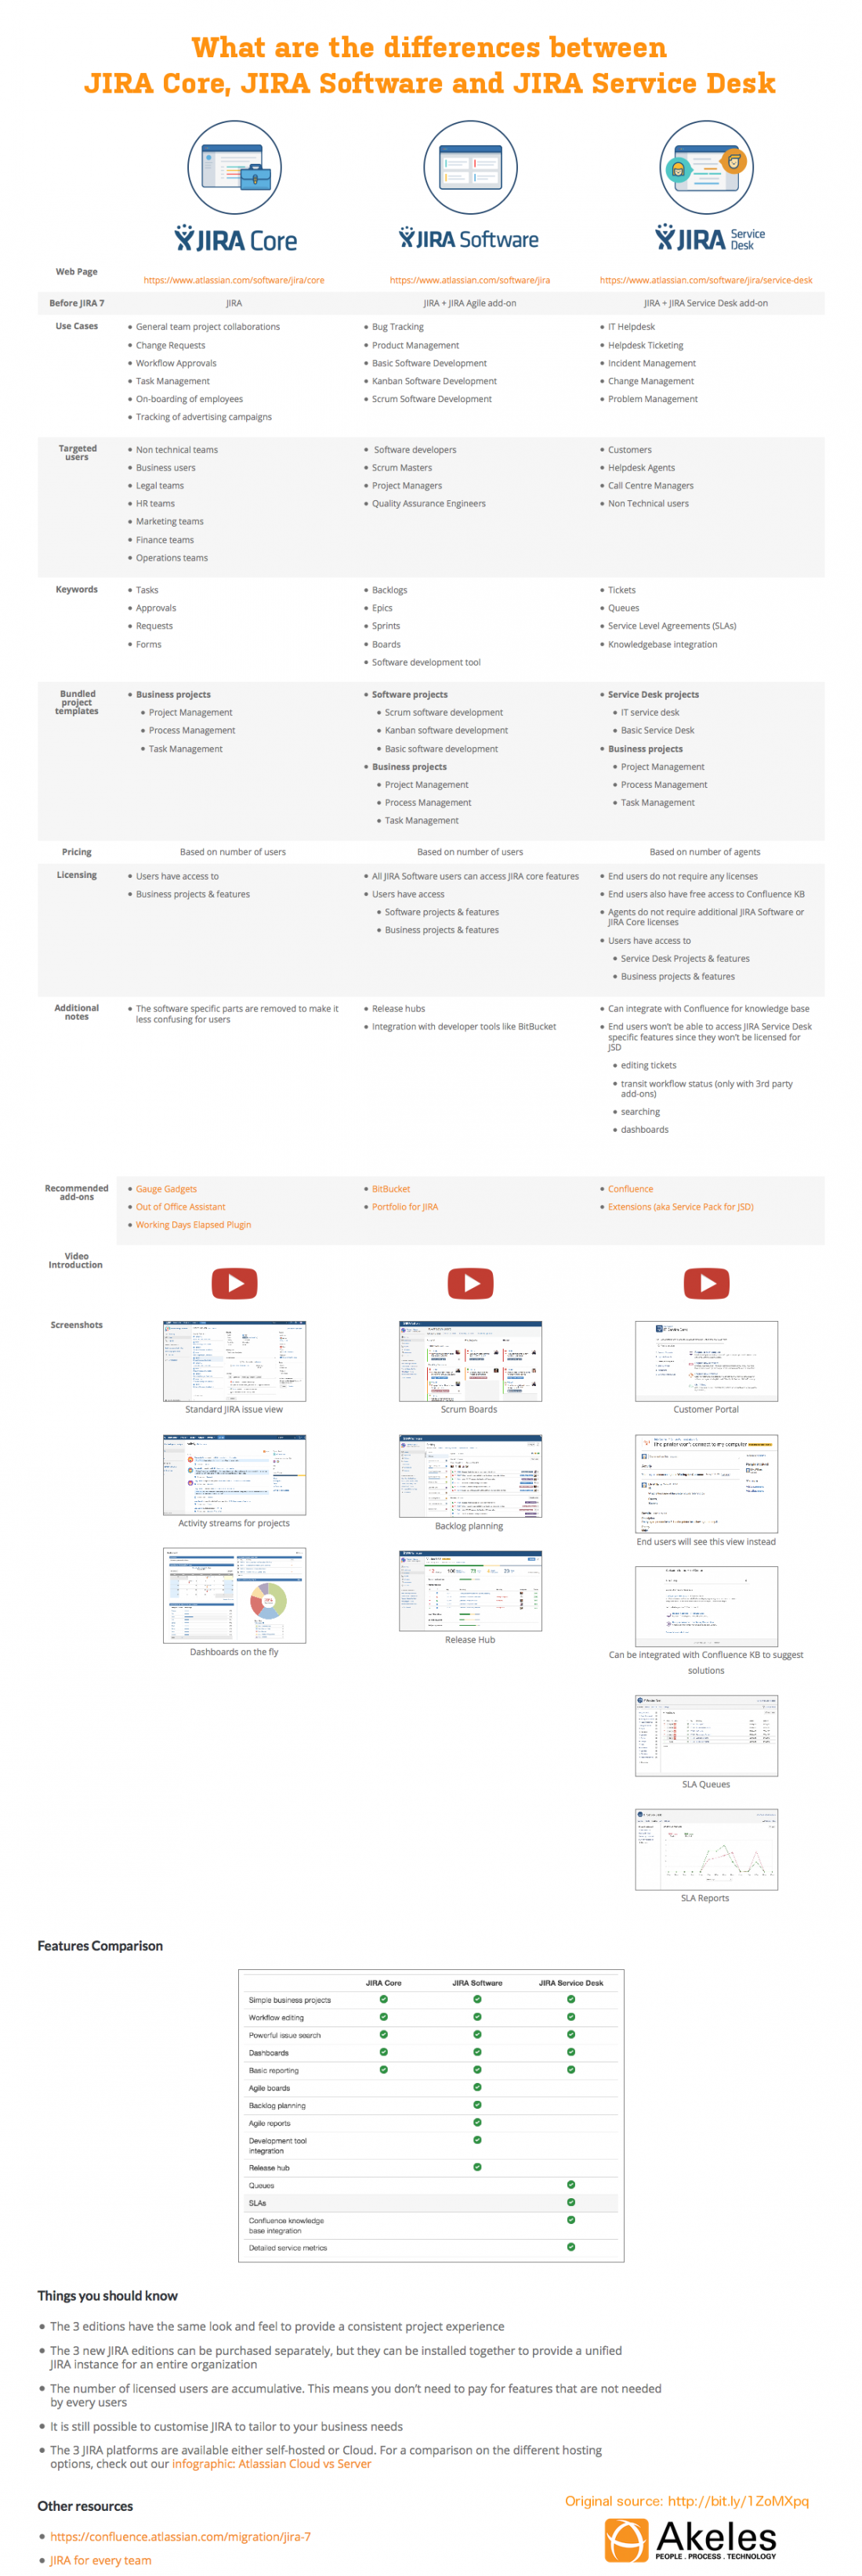 JIRA Product Family Infographic